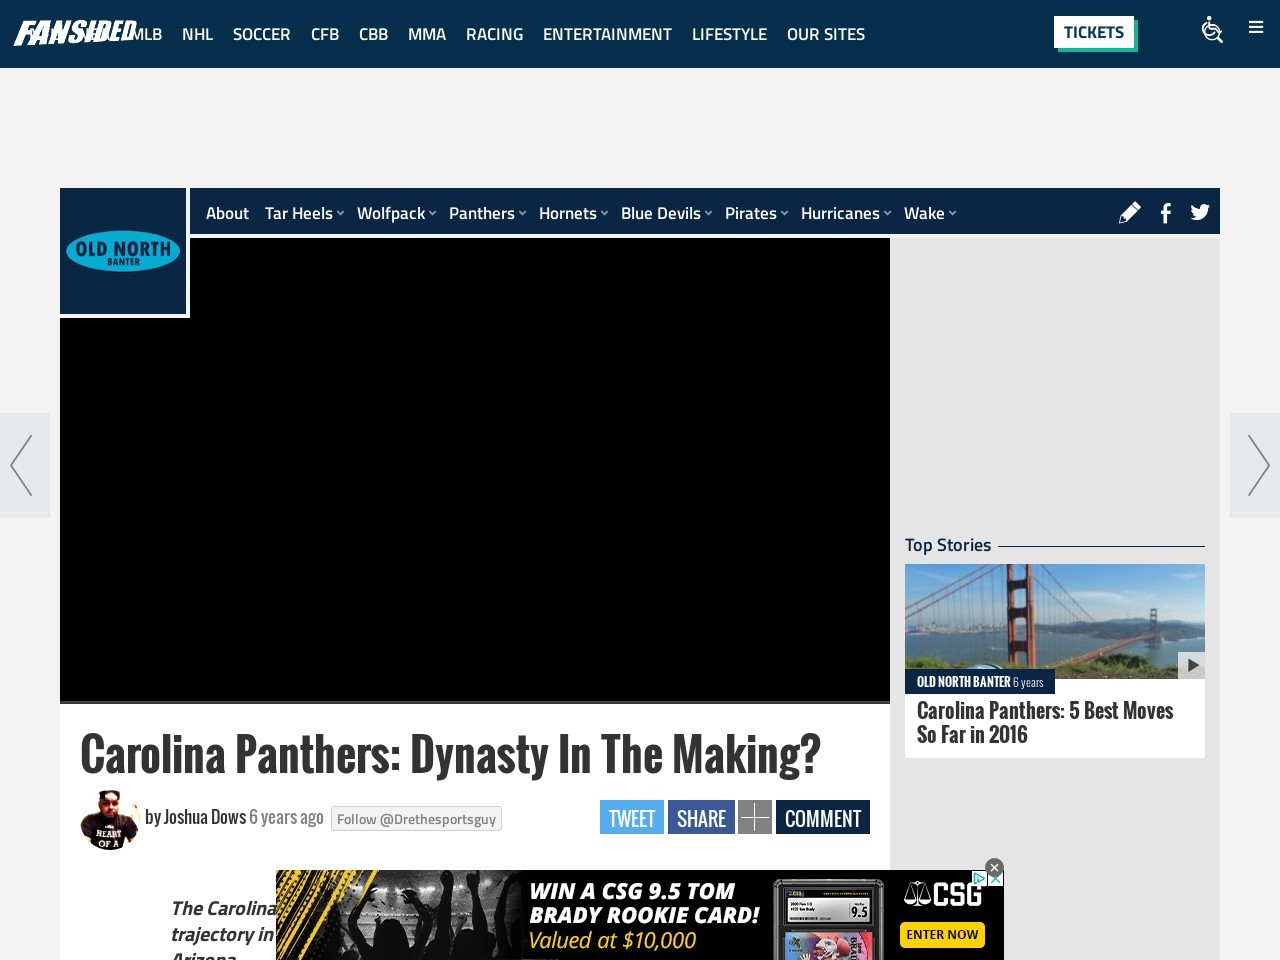 Carolina Panthers: Dynasty In The Making?